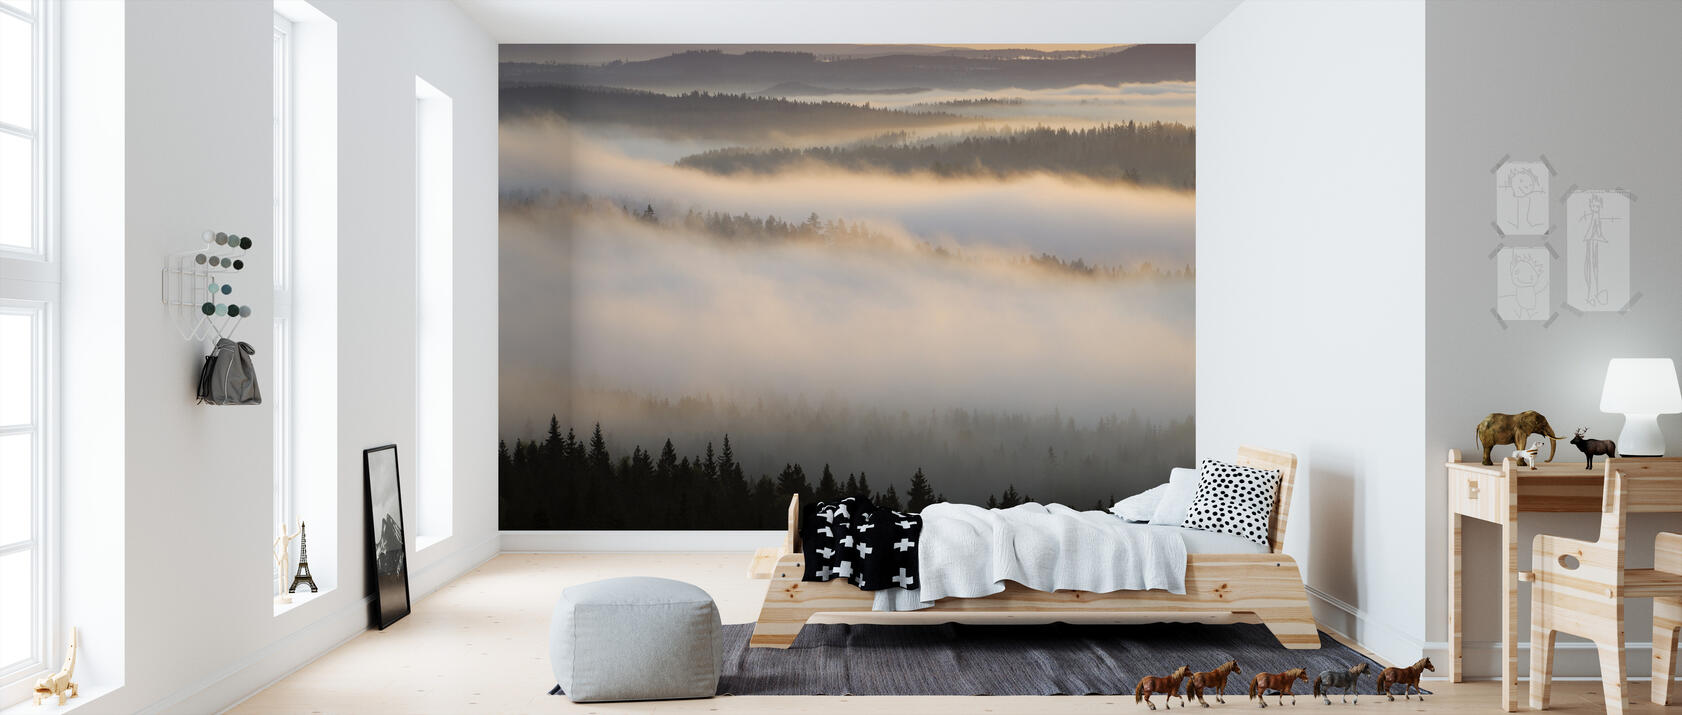 fog in bergslagen sweden fototapete nach ma photowall. Black Bedroom Furniture Sets. Home Design Ideas